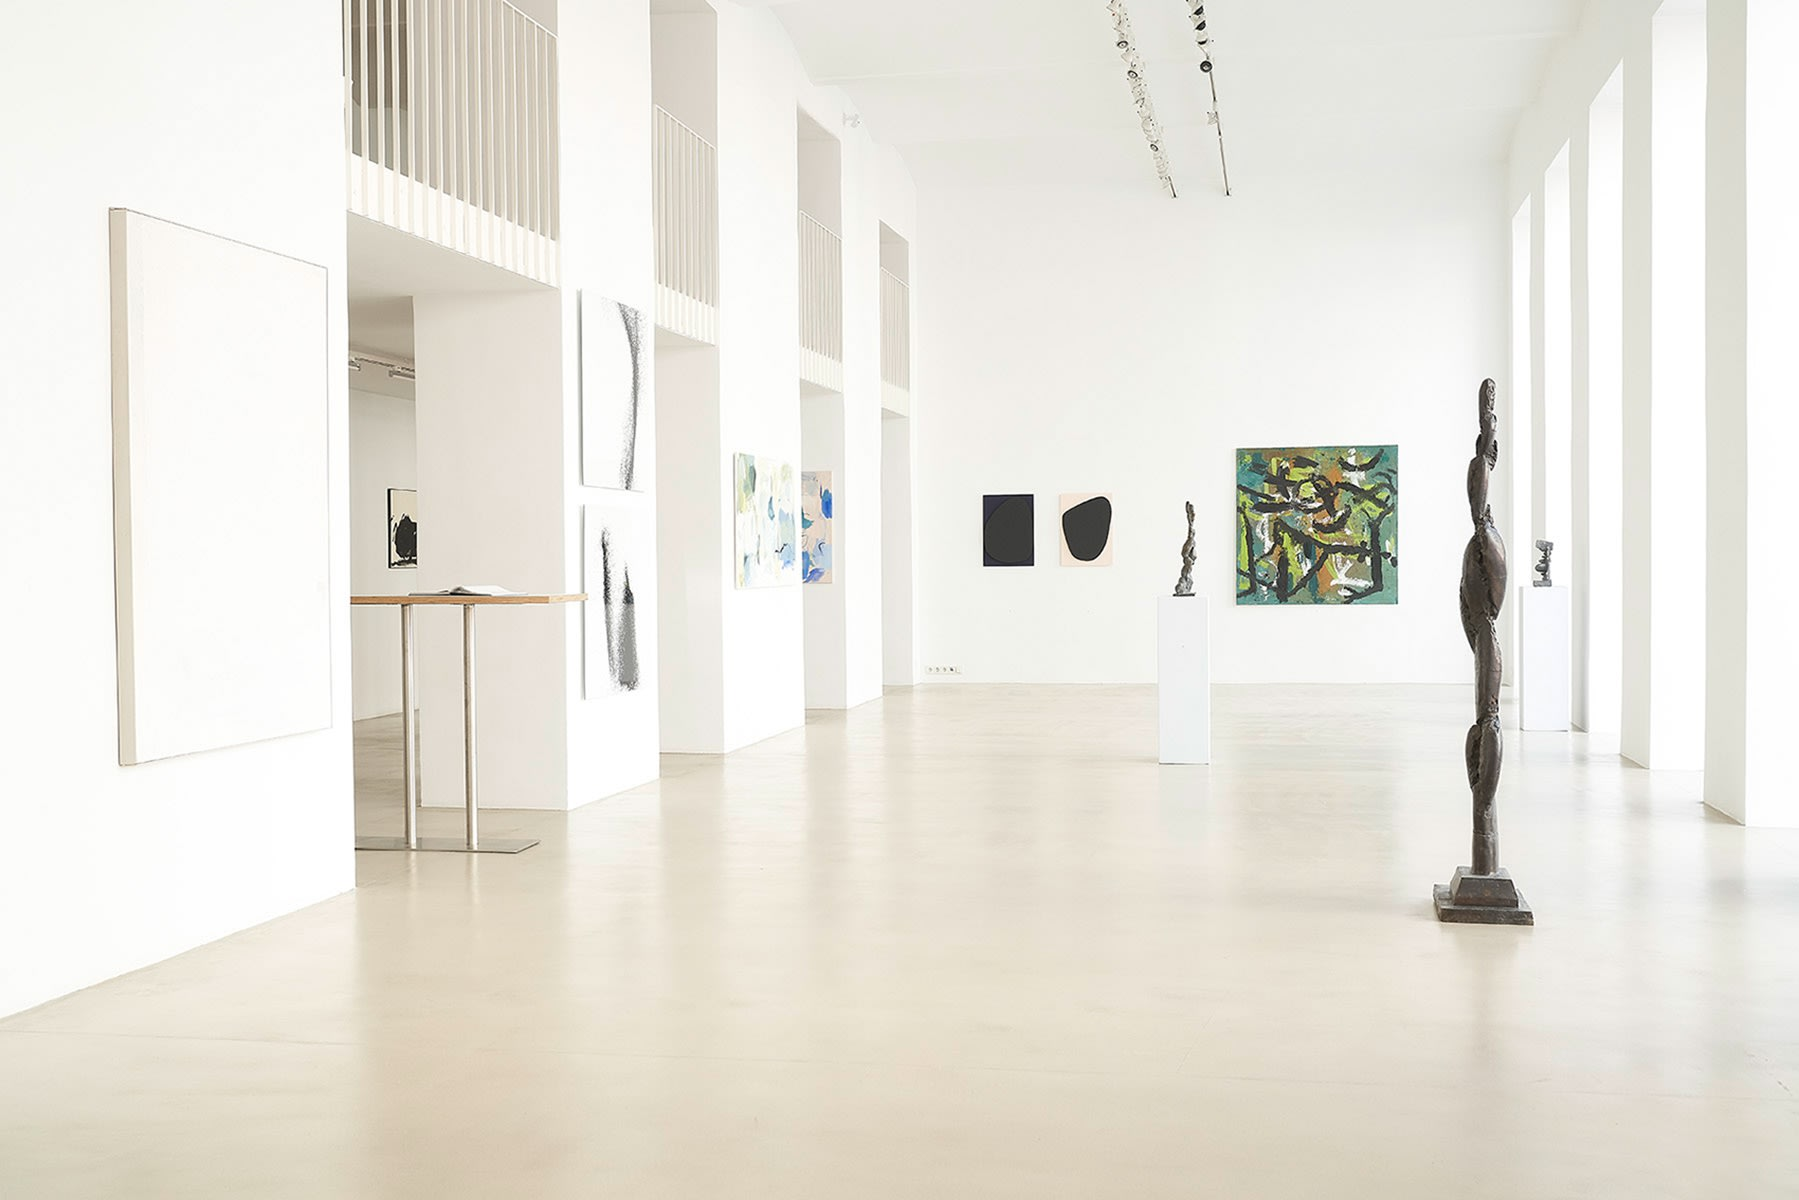 ZS Art Gallery shows the gallery space with its high white walls and a mezzanine with balcony showing artworks from various artists